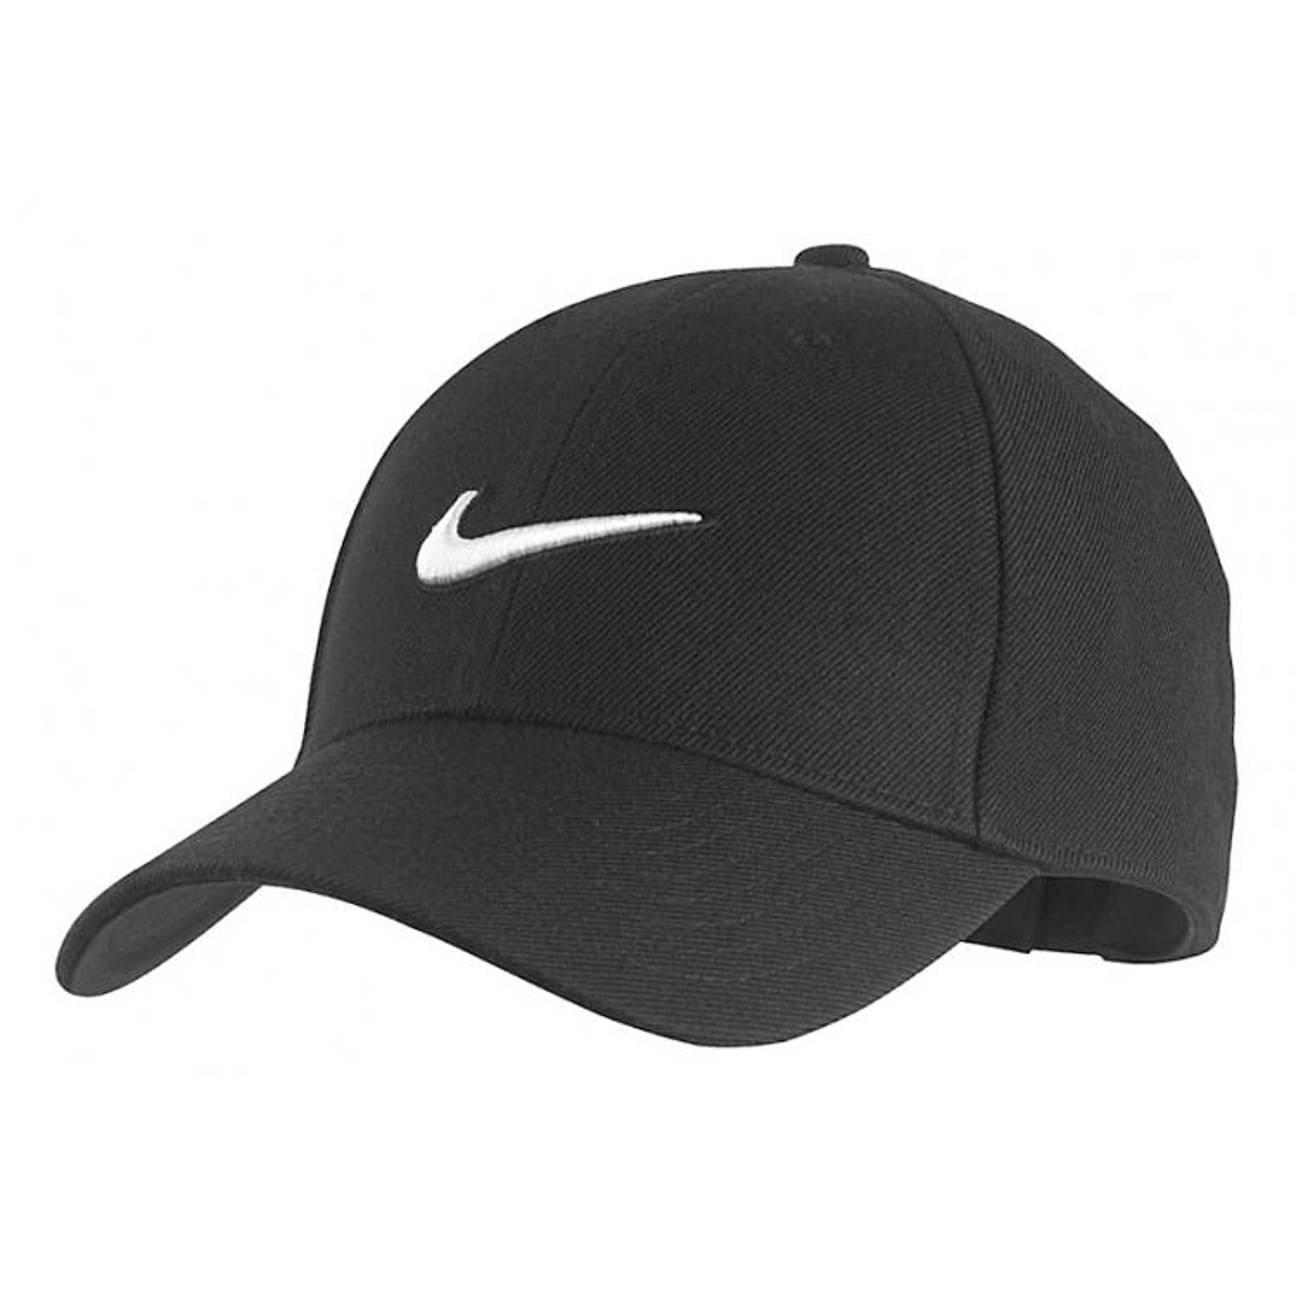 0ee247a9a5e45 ... Casquette Structured Swoosh by Nike - blanc 1 ...